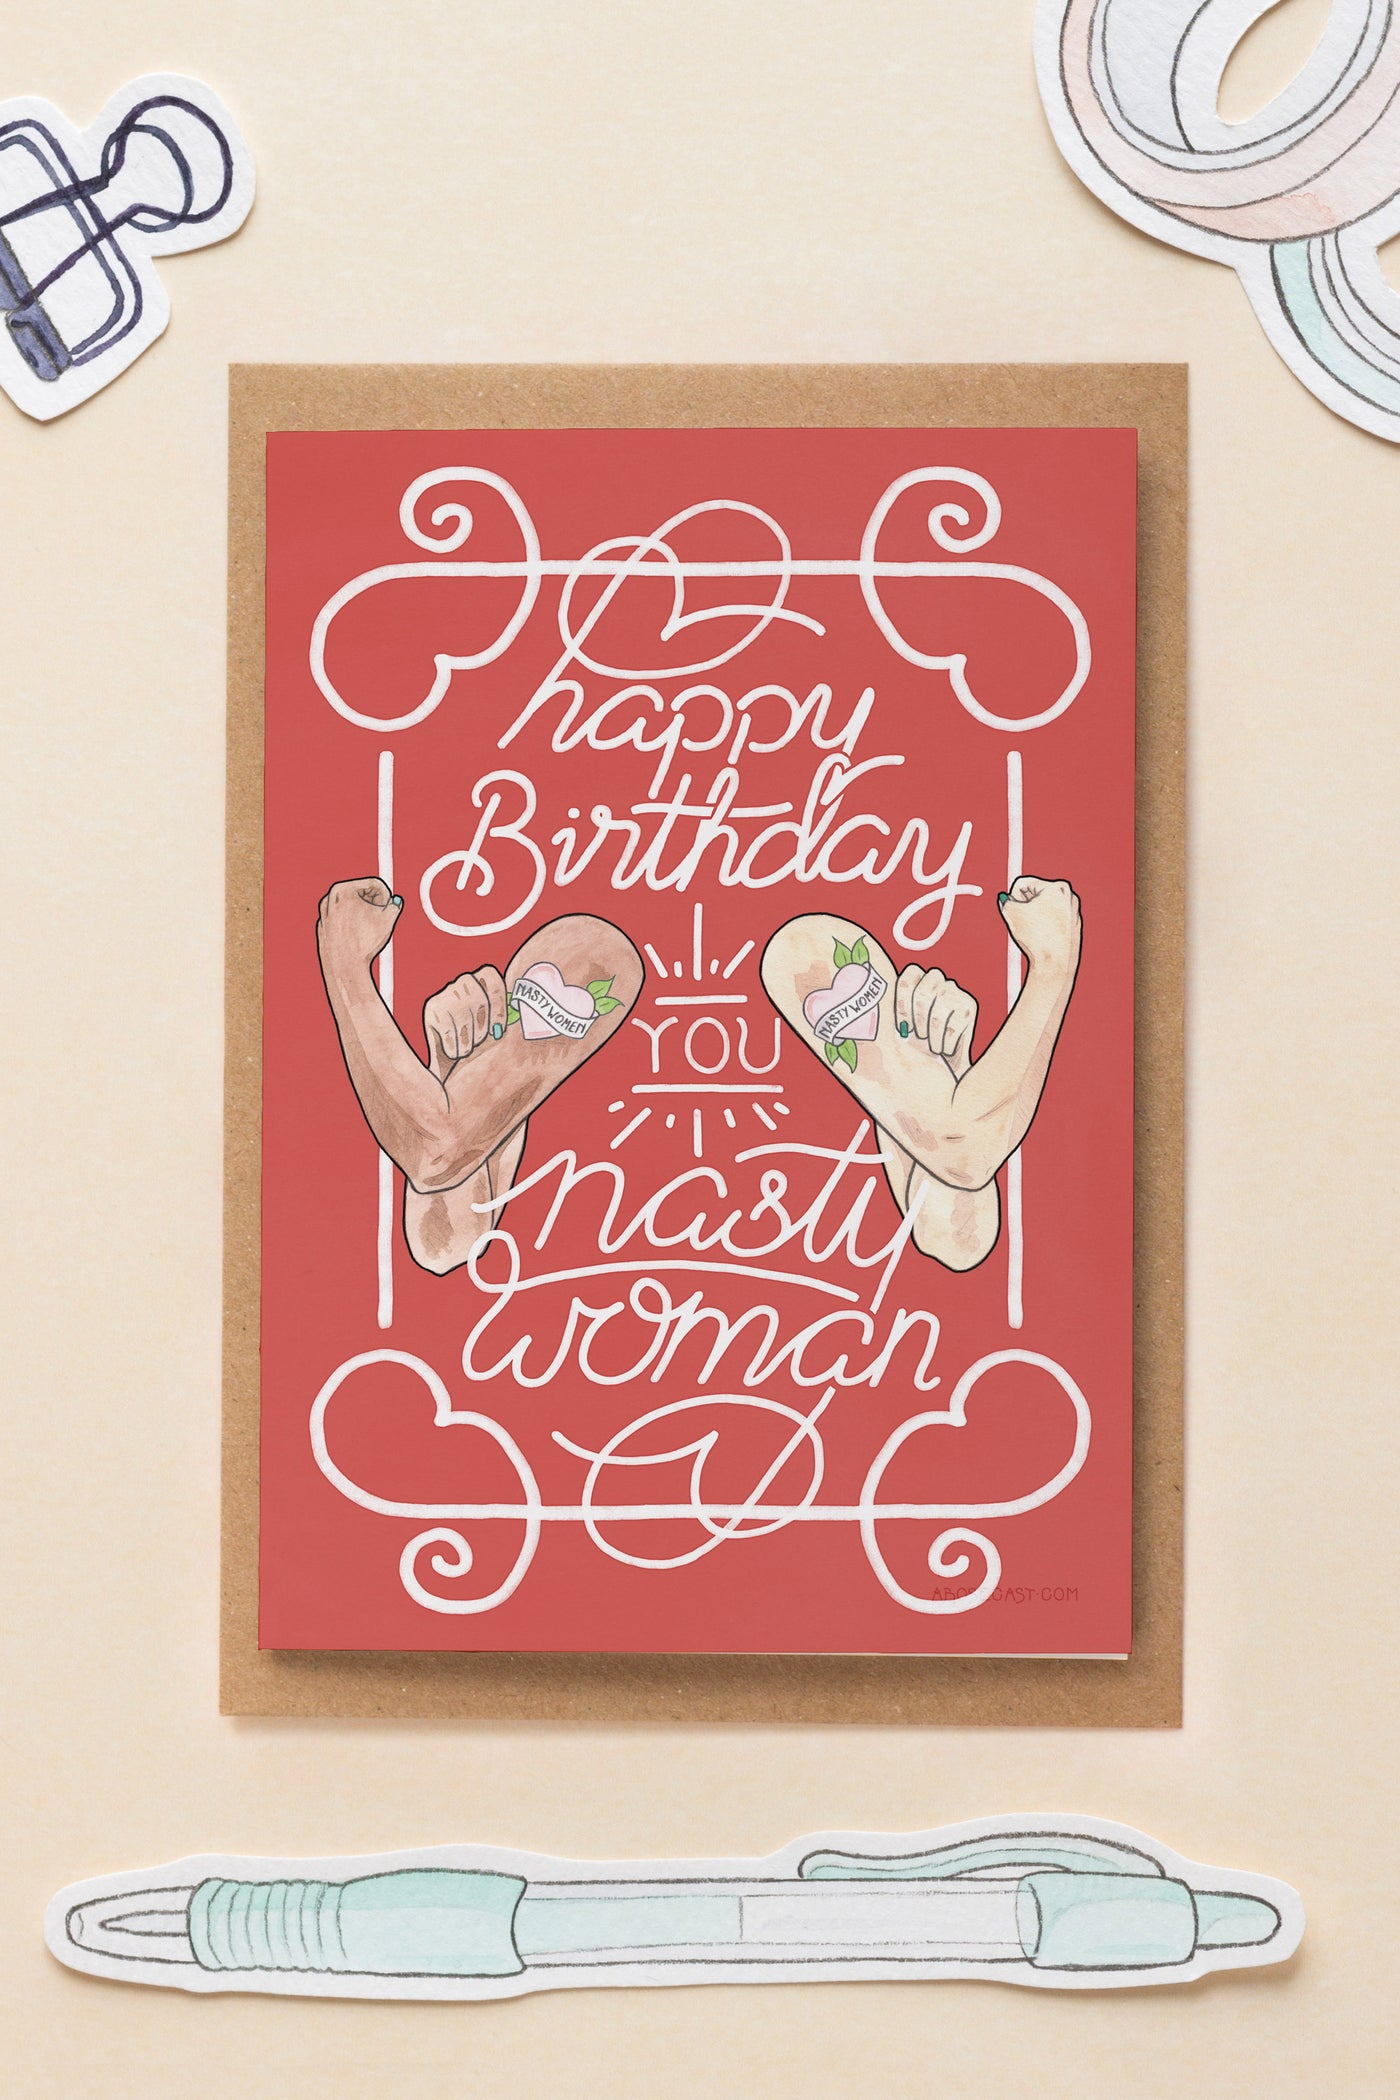 Happy Birthday, You Nasty Woman Feminist Friendship Card - A Rose Cast